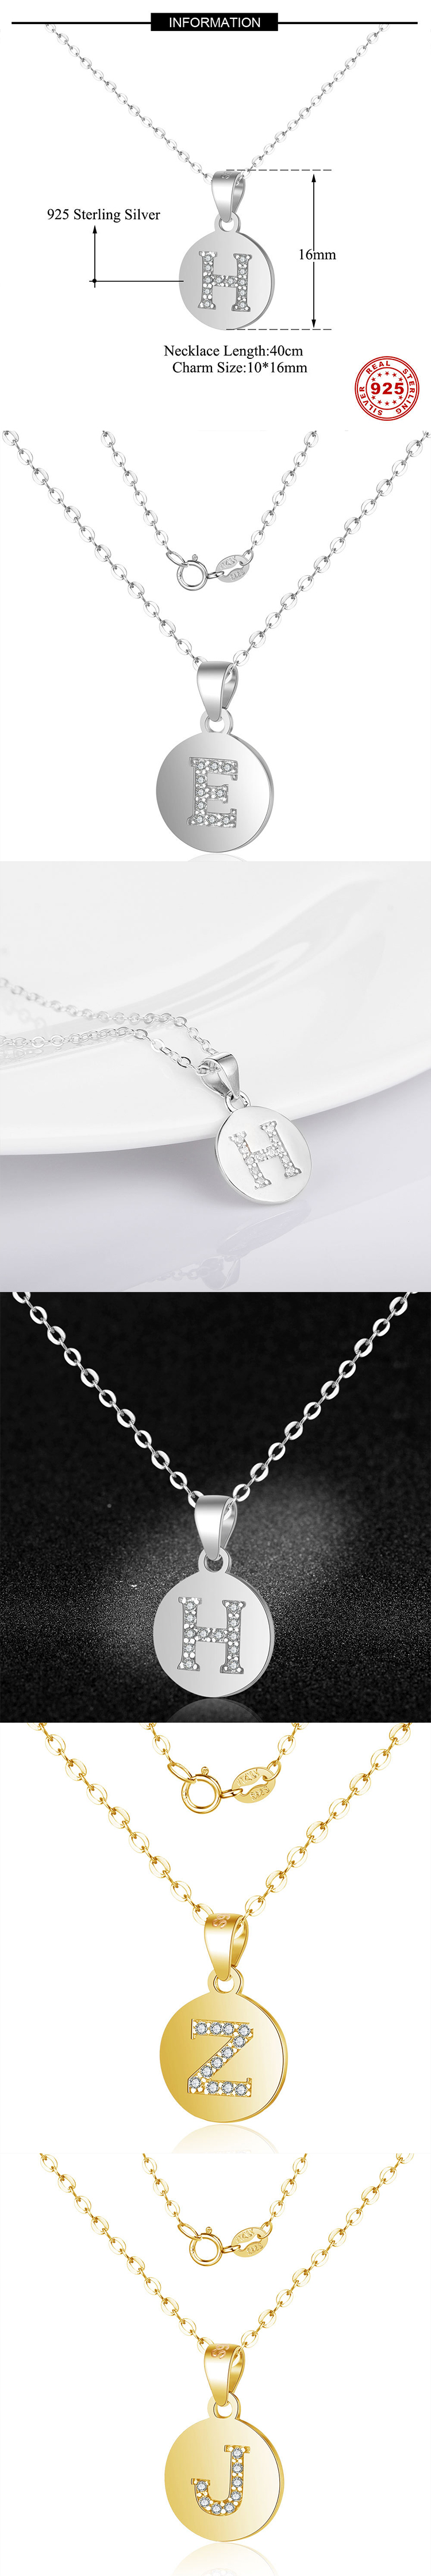 Hot Sale Europe Fashion 26 Letters Sexy S925 Sterling Silver Necklace for Women